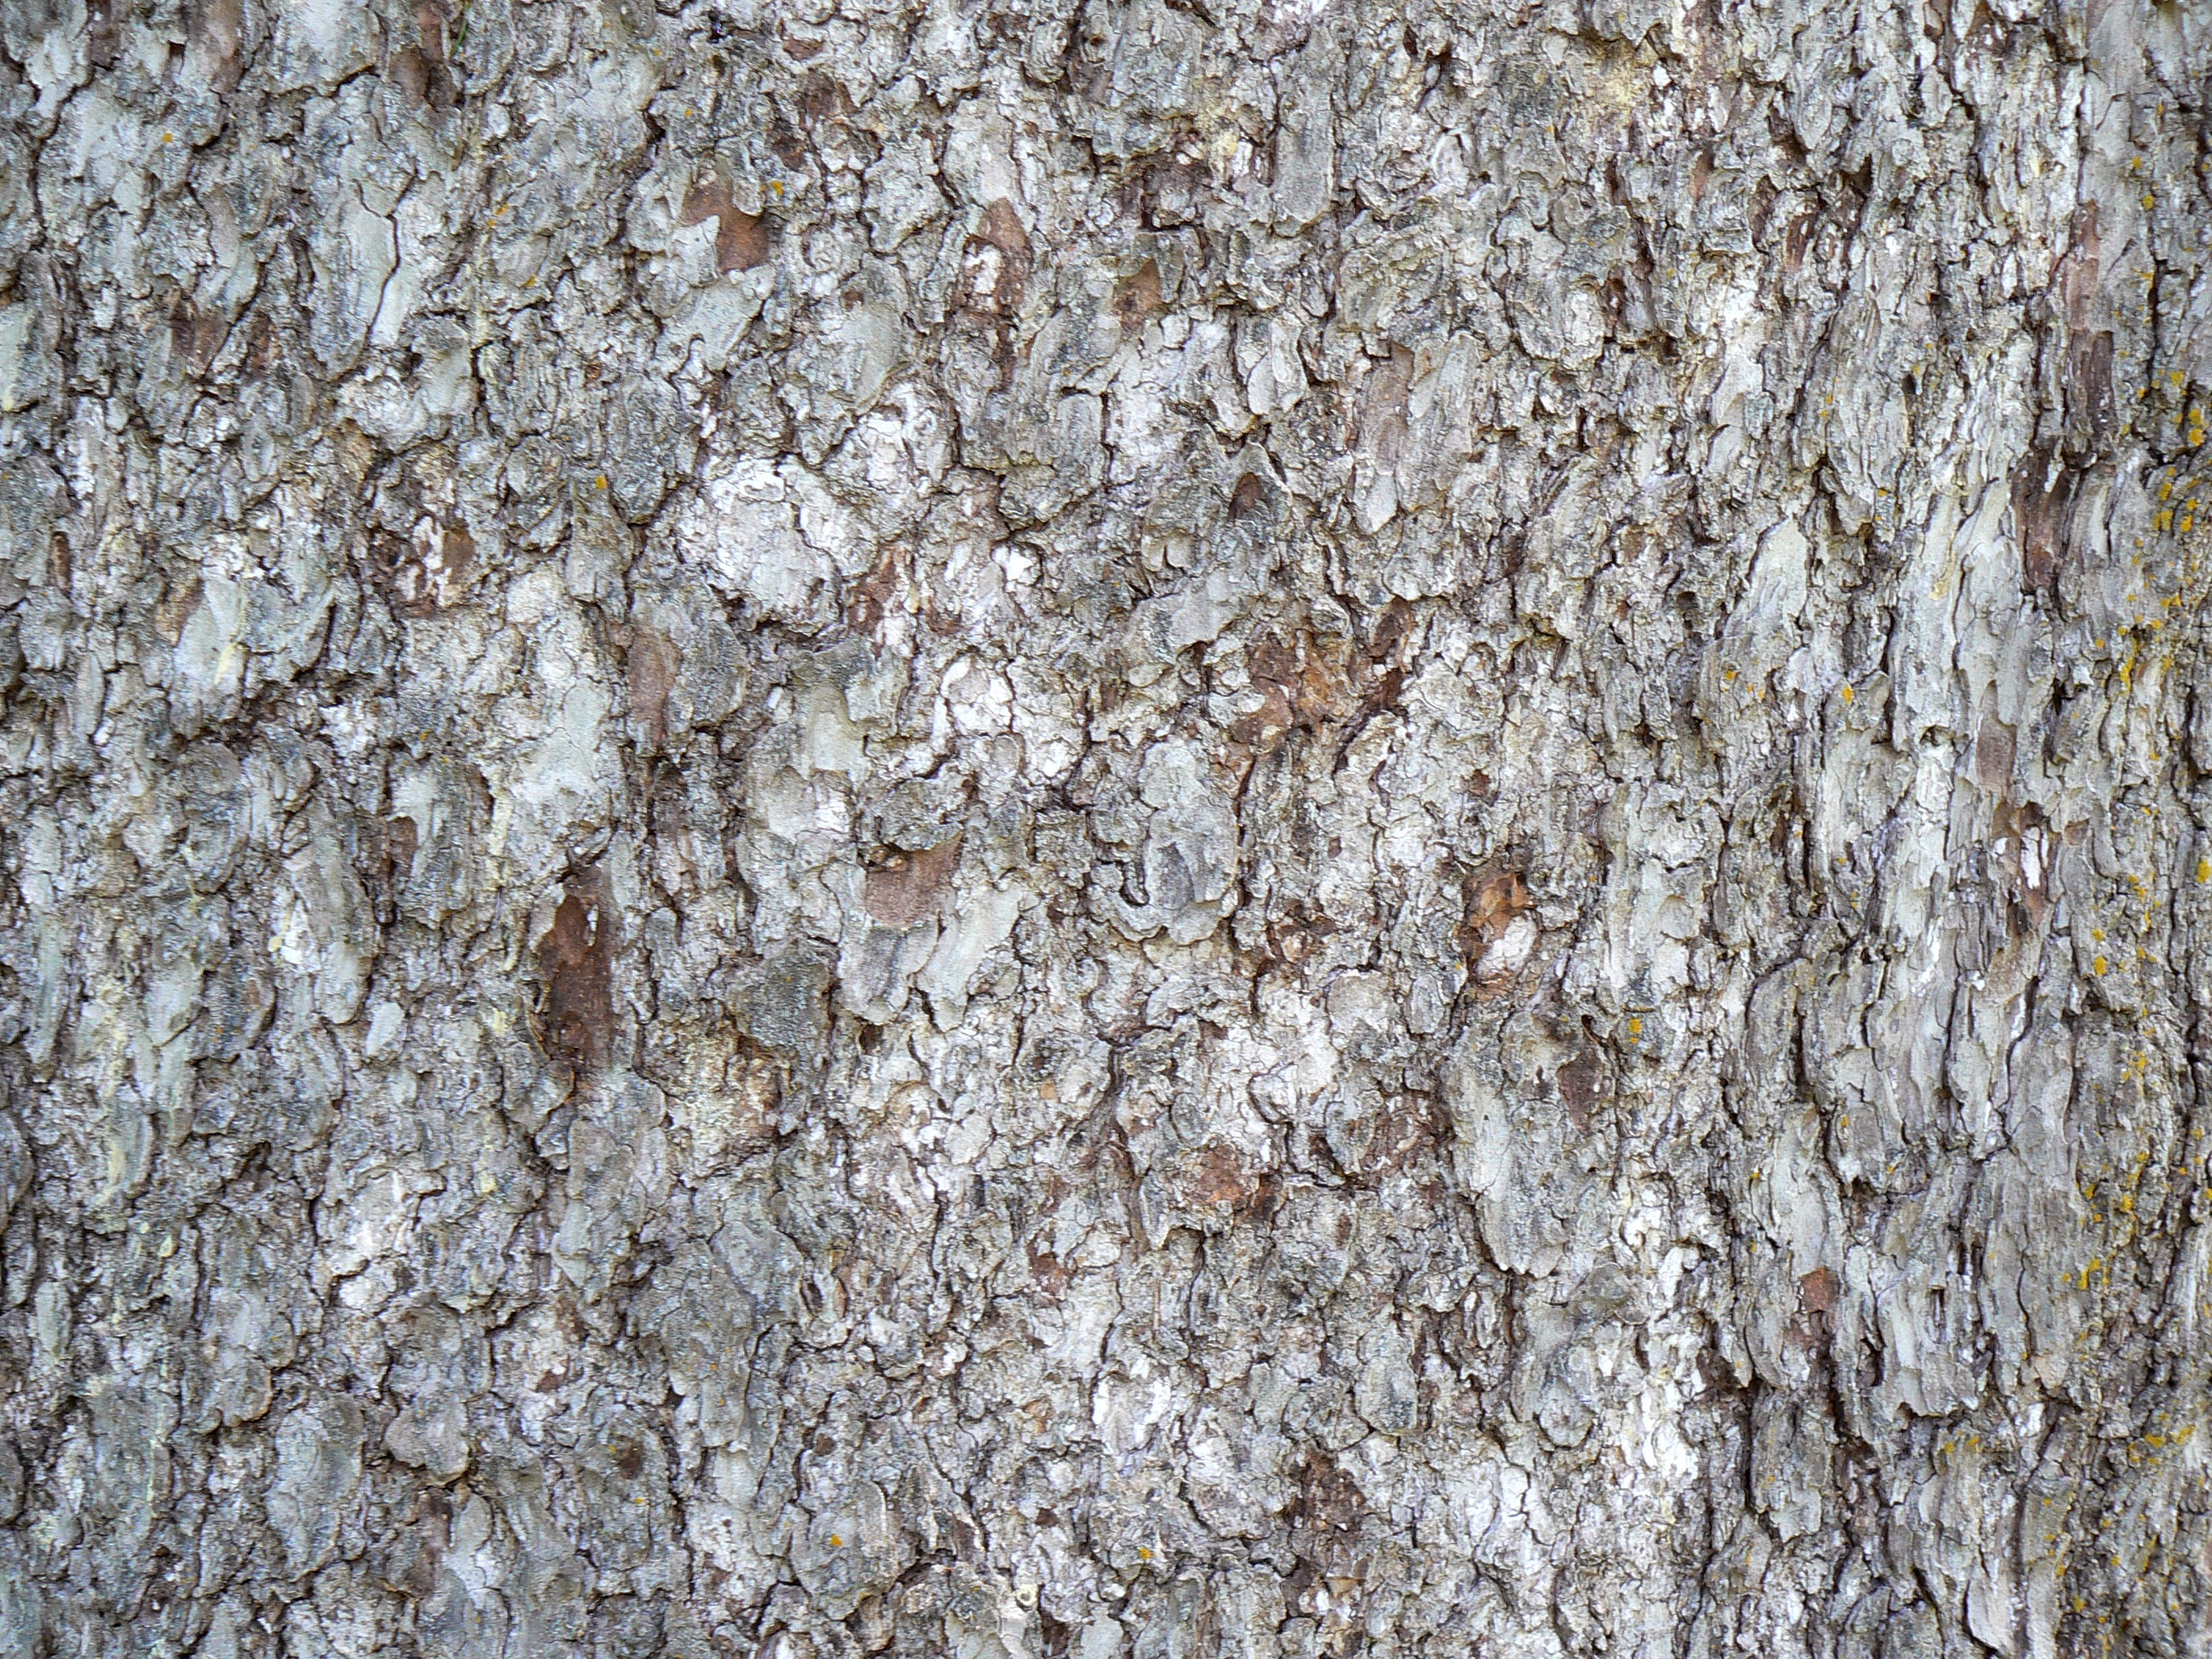 File:Norway Spruce bark detail.jpg - Wikimedia Commons